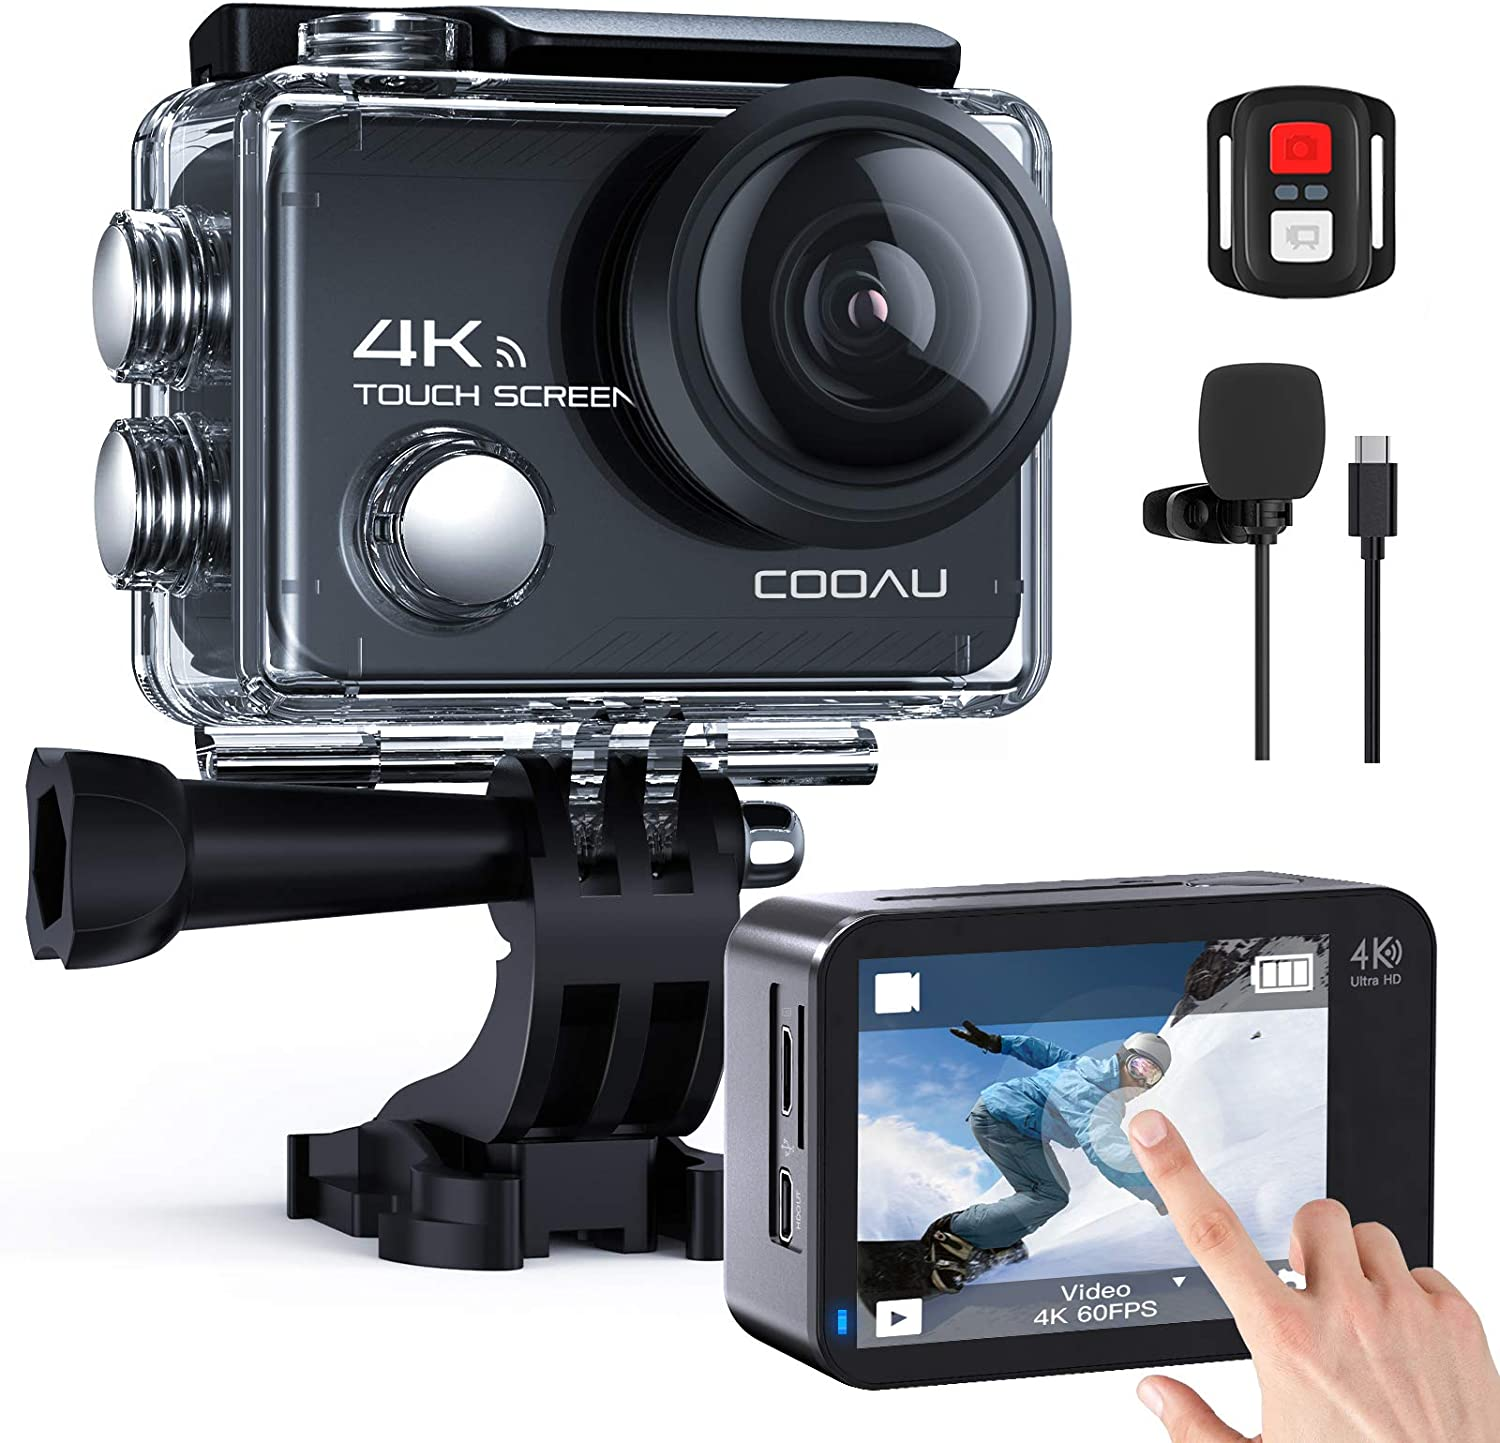 COOAU Native 4K 60fps 20MP Touch Max 53% OFF Sport Camera Action Screen WiFi Challenge the lowest price of Japan ☆